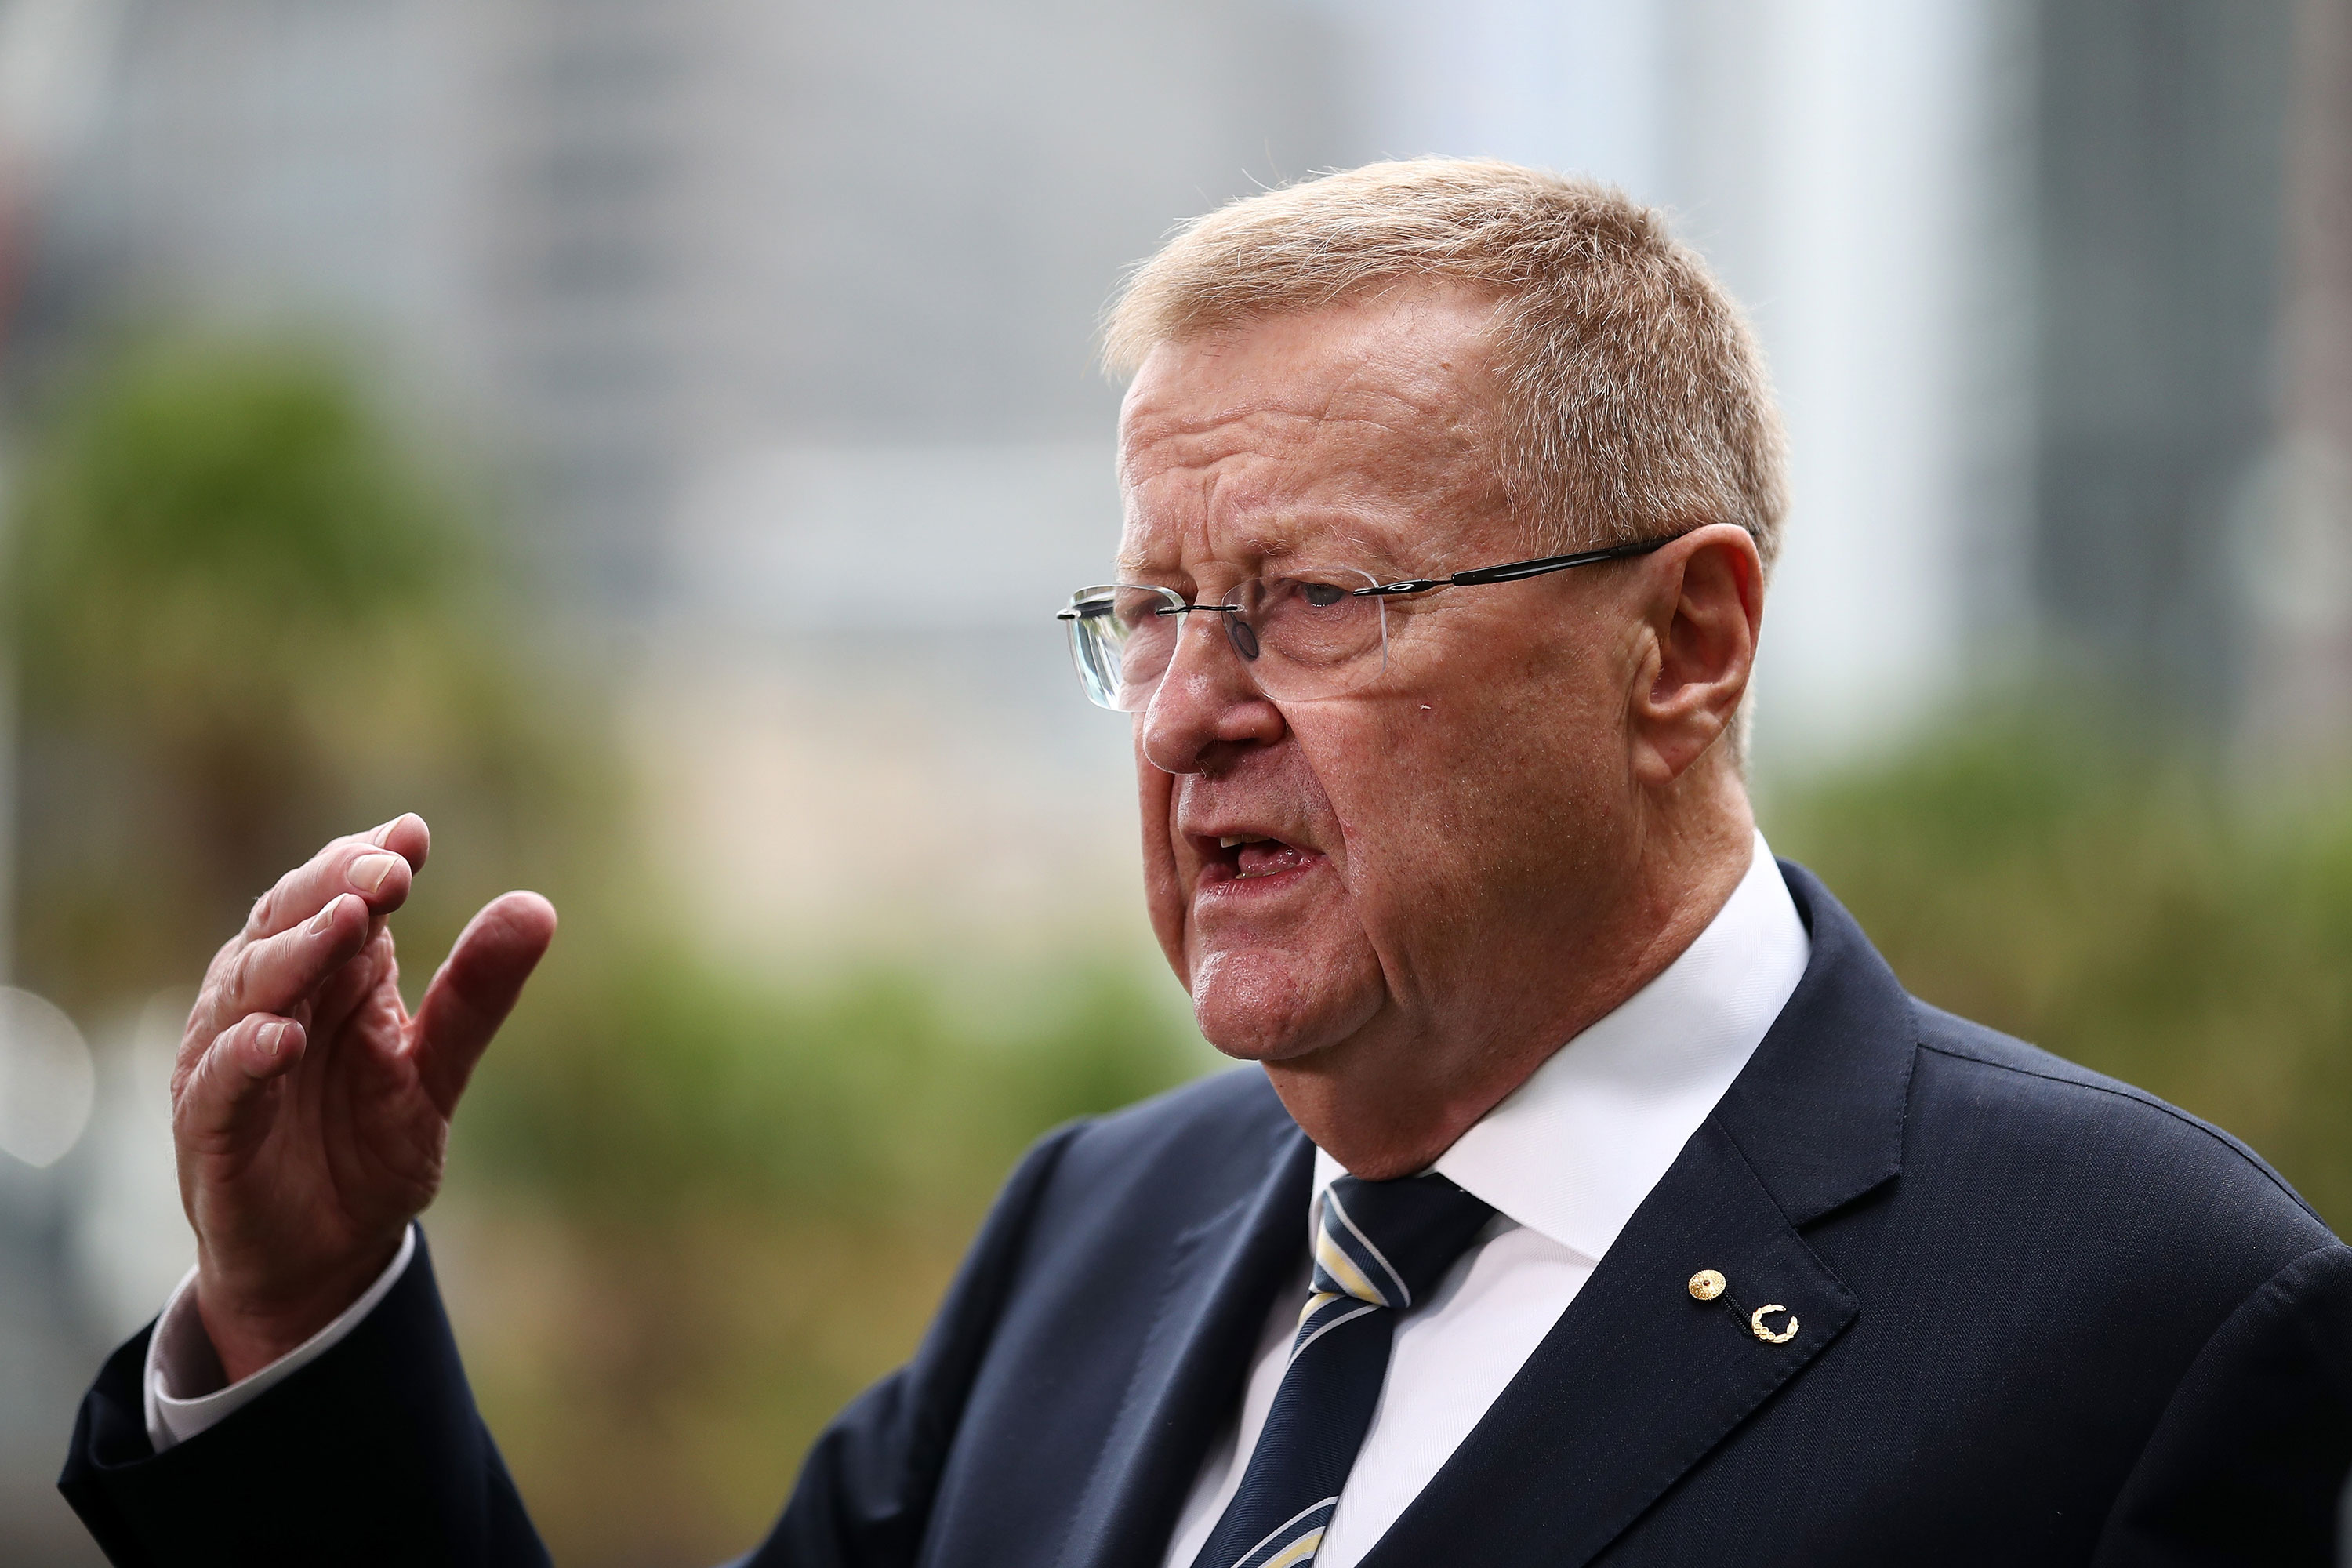 Australian Olympic Committee President John Coates addresses the media in Sydney on May 9.